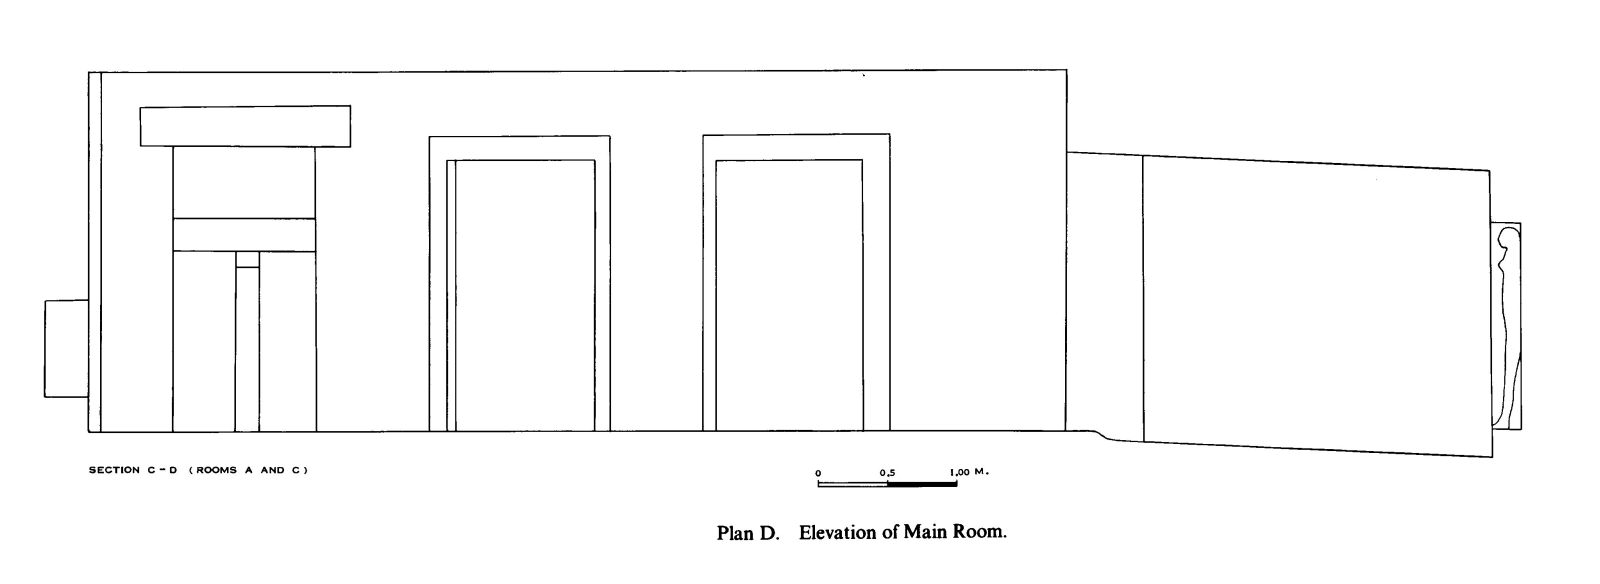 Maps and plans: G 7530-7540, Elevation of main room